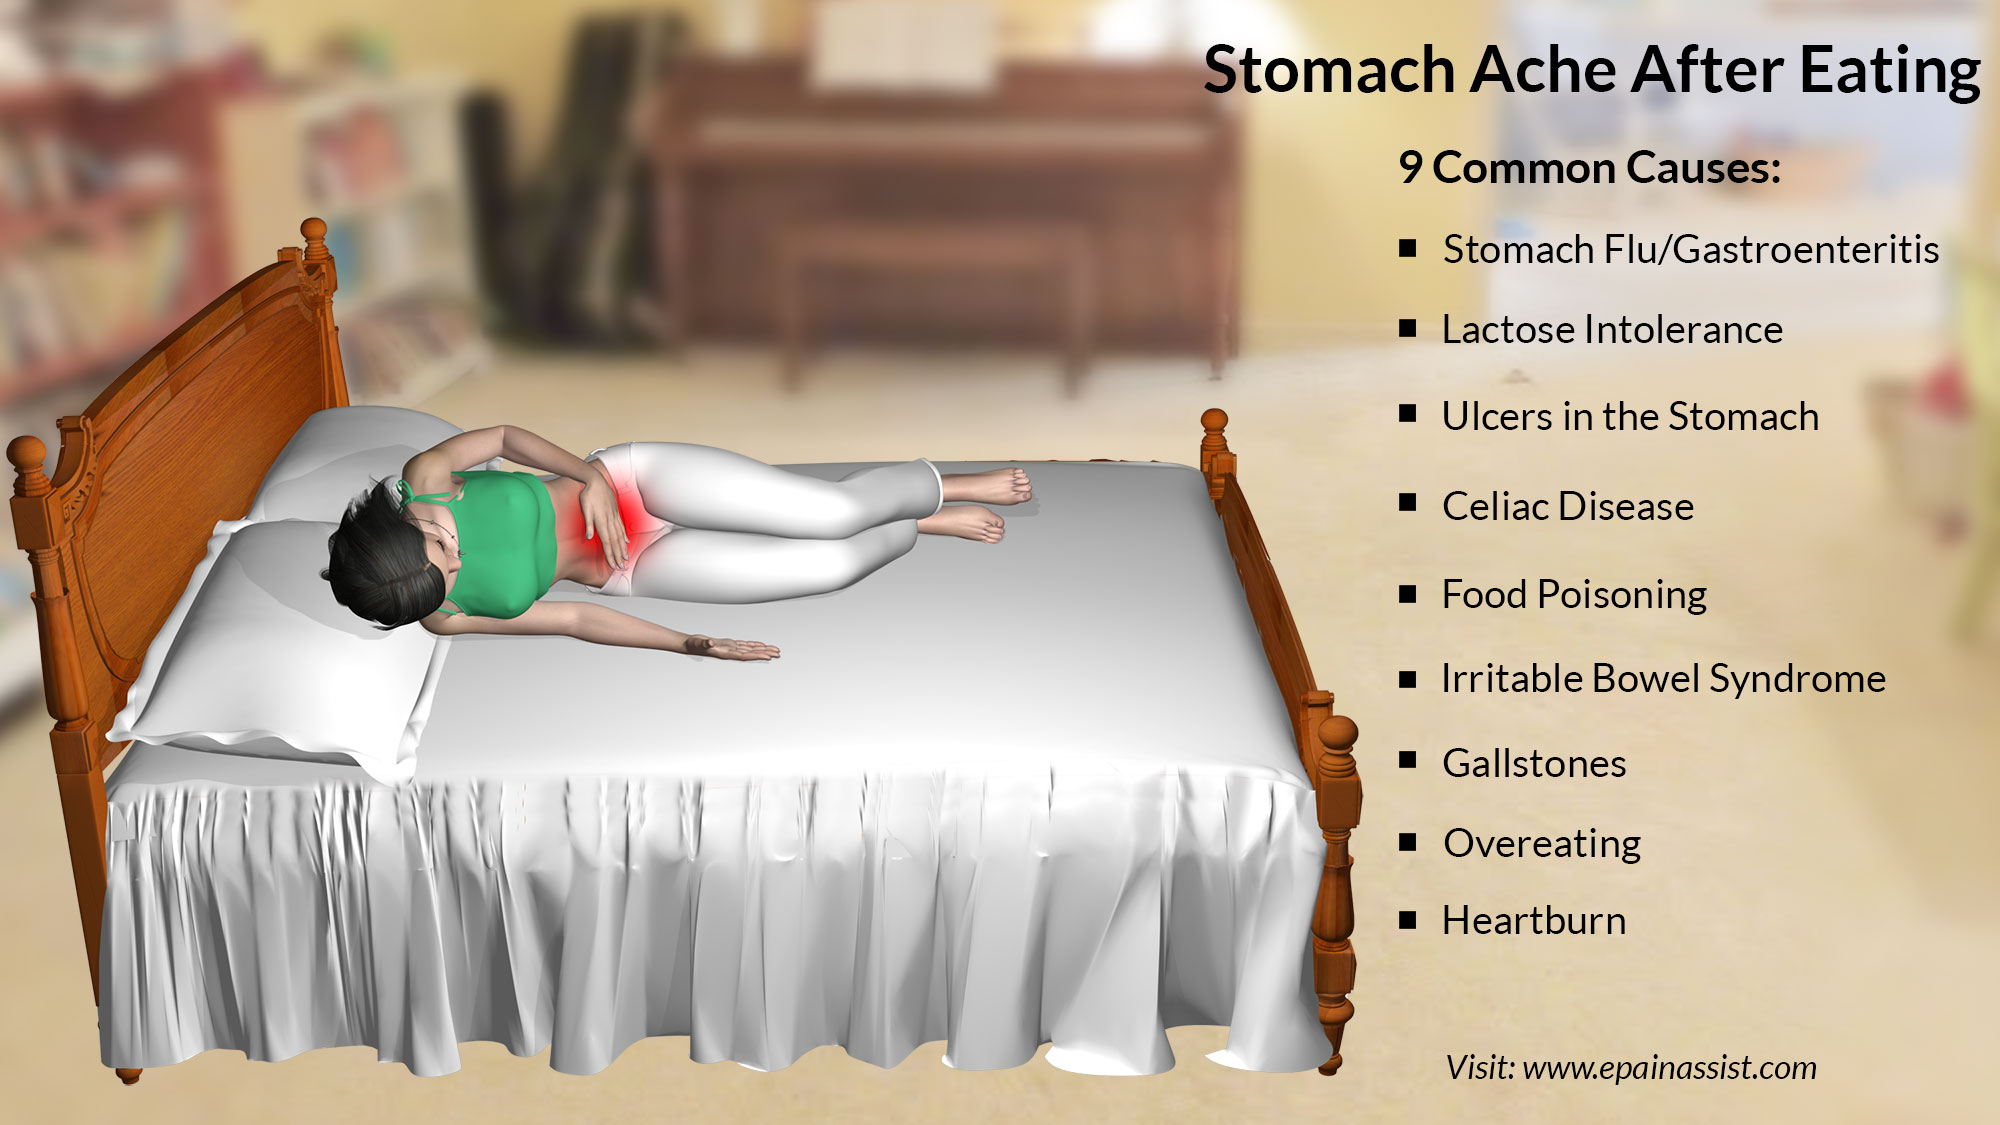 abdominal pain or stomach ache after eating: 9 common causes, Cephalic Vein